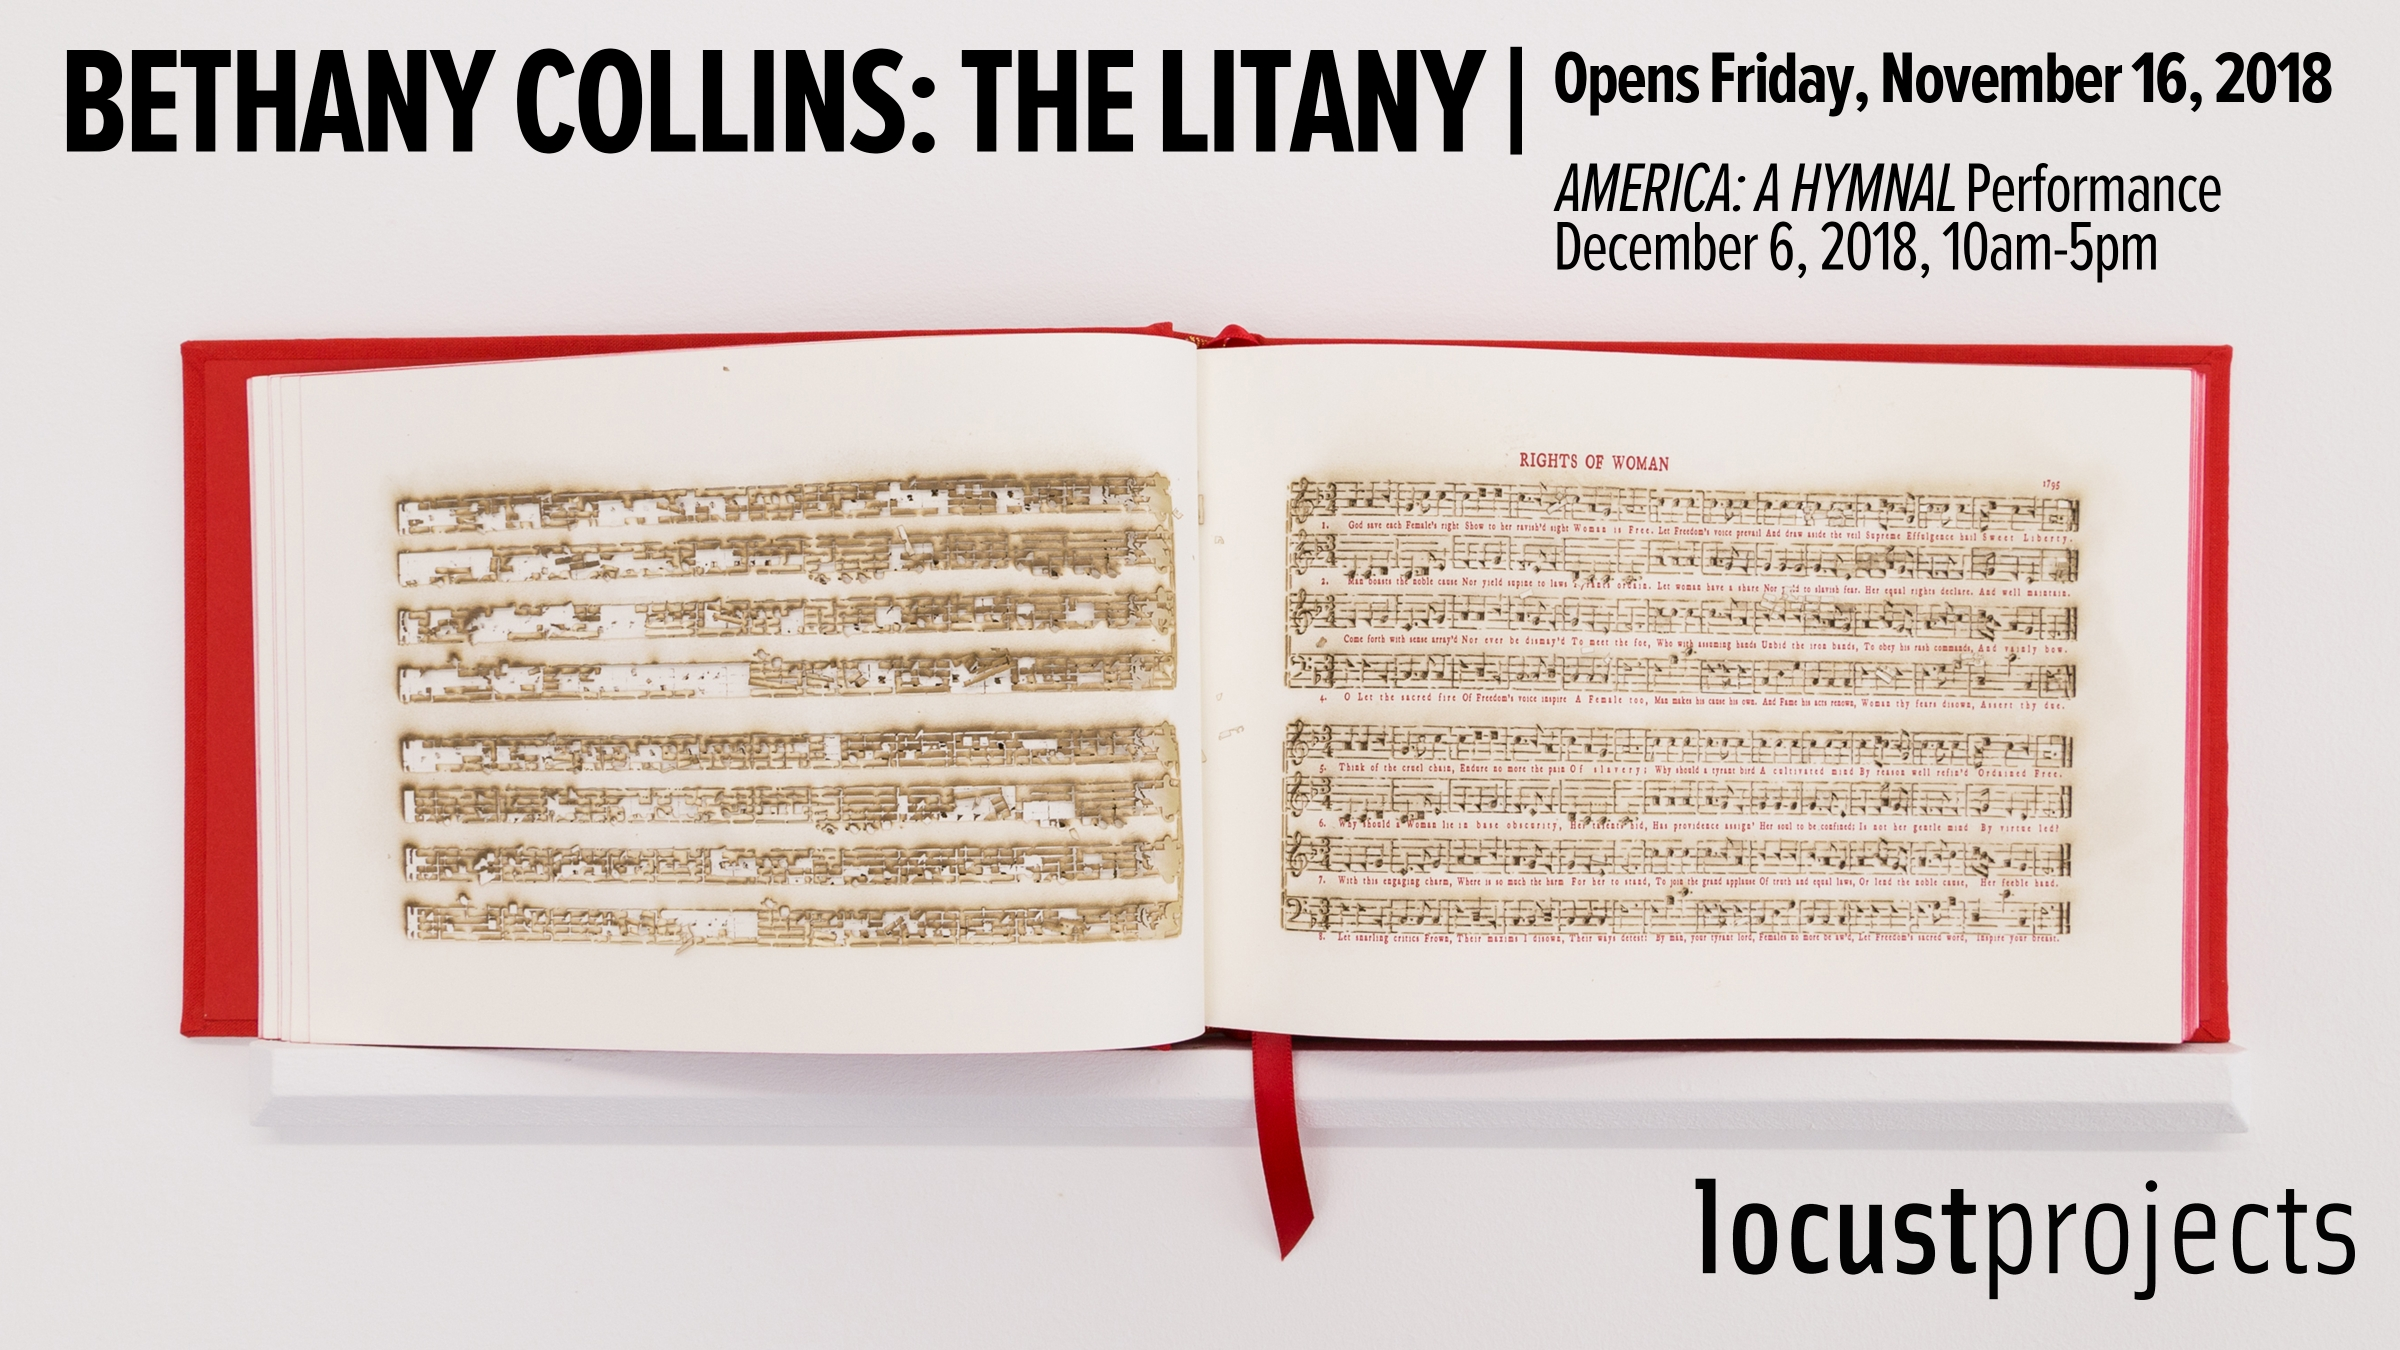 Coming up - Bethany Collins: The Litany